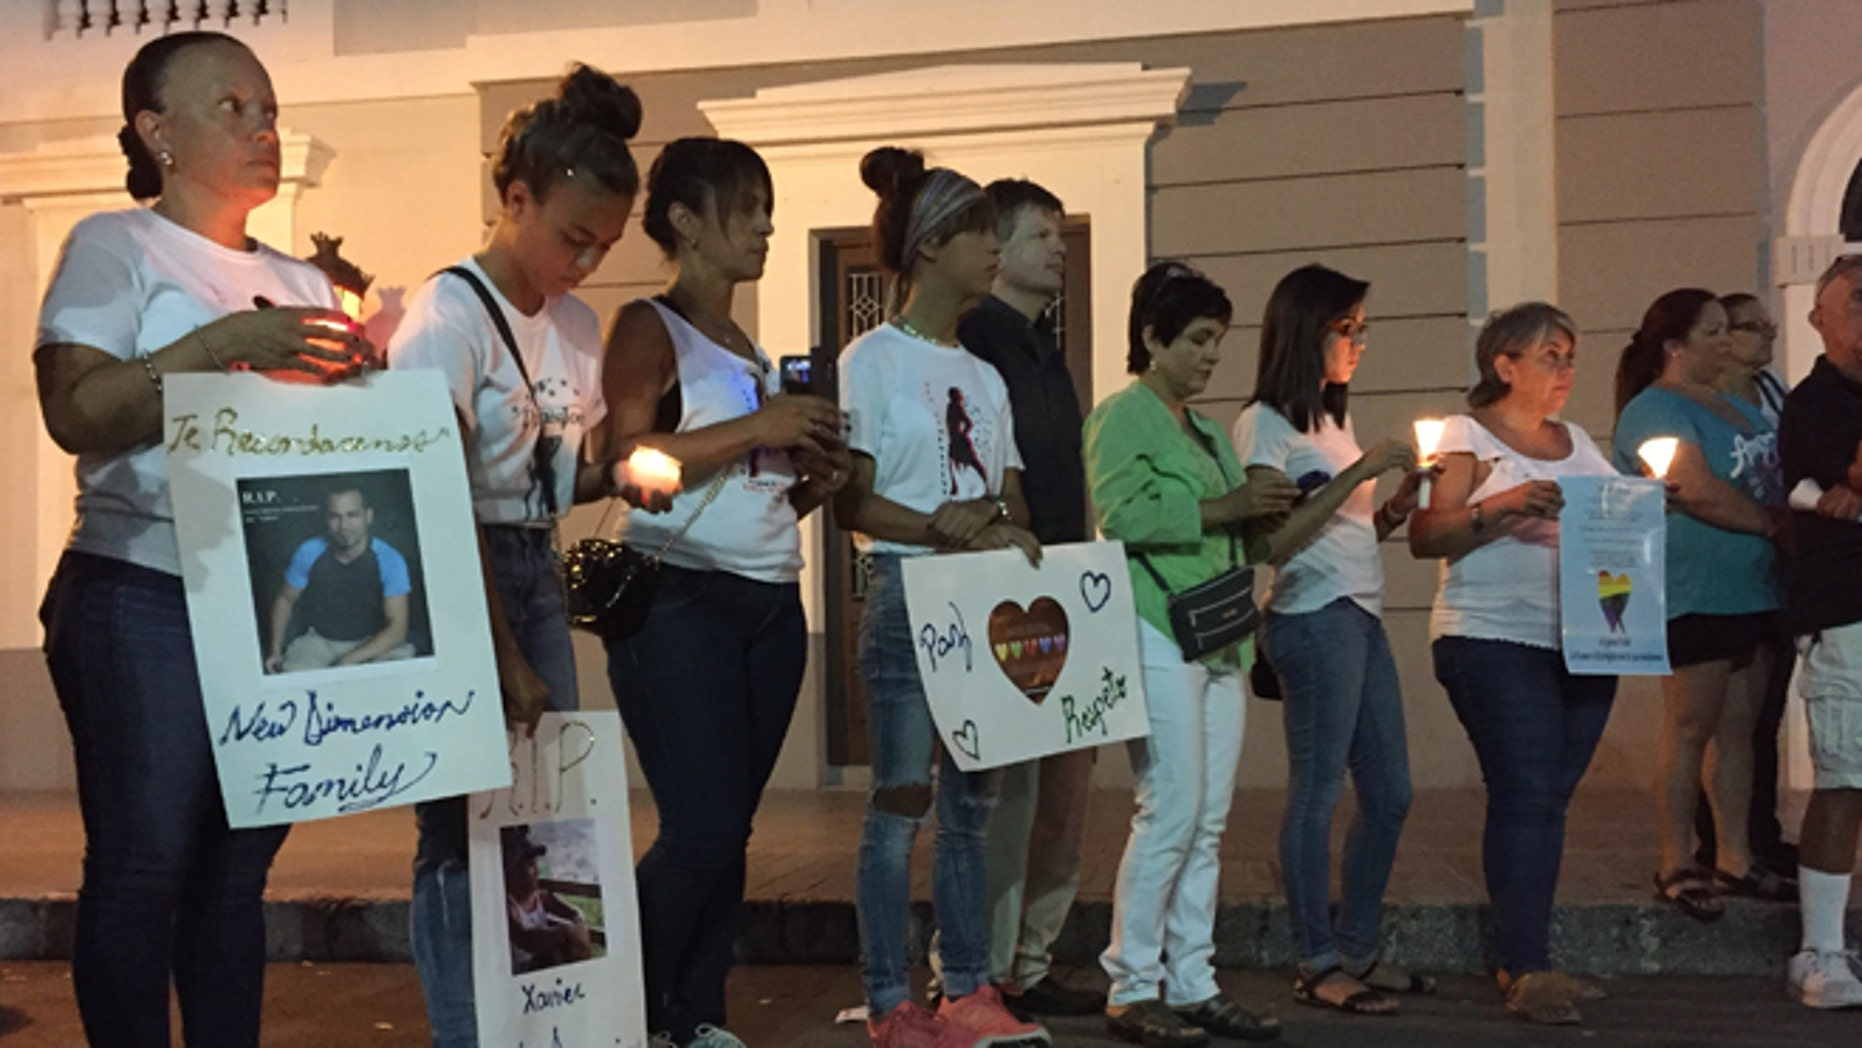 People gather with posters and candles in Ponce, Puerto Rico, Monday, June 13, 2016, during a vigil for the victims of Sunday's Orlando shootings at a gay nightclub in Florida. At least 5 of the 49 victims were from Ponce, the second largest city on Puerto Rico's southern coast. (AP Photo/Danica Coto)